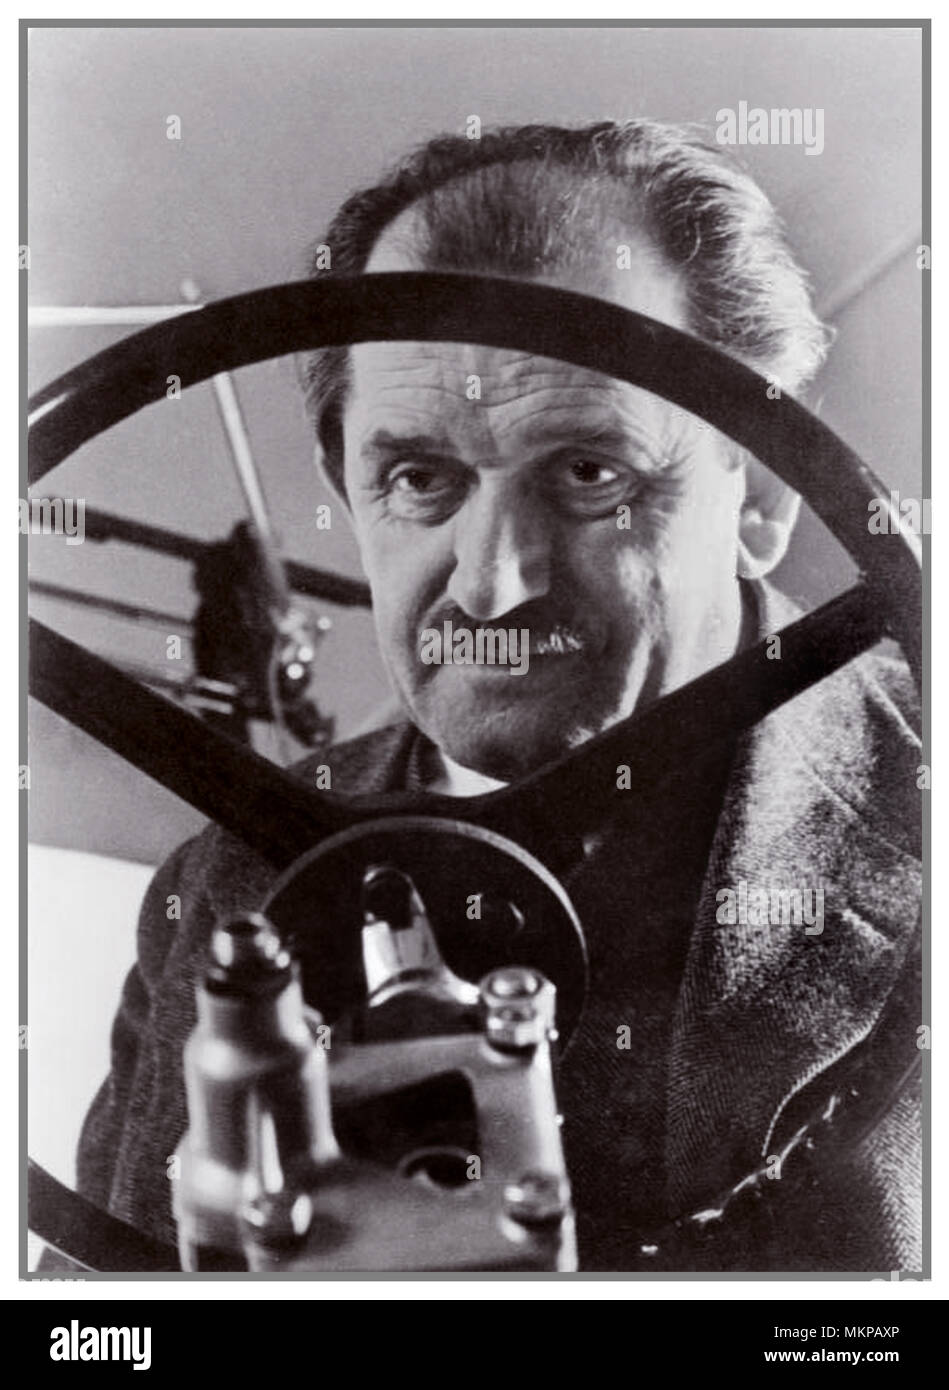 1940 Dr Ferdinand Porsche, environmental portrait viewed through his 'people's car' steering wheel (his invention and creation) a KDF-Wagen VW Beetle Volkswagen Adolf Hitlers vision of Strength Through Joy... - Stock Image